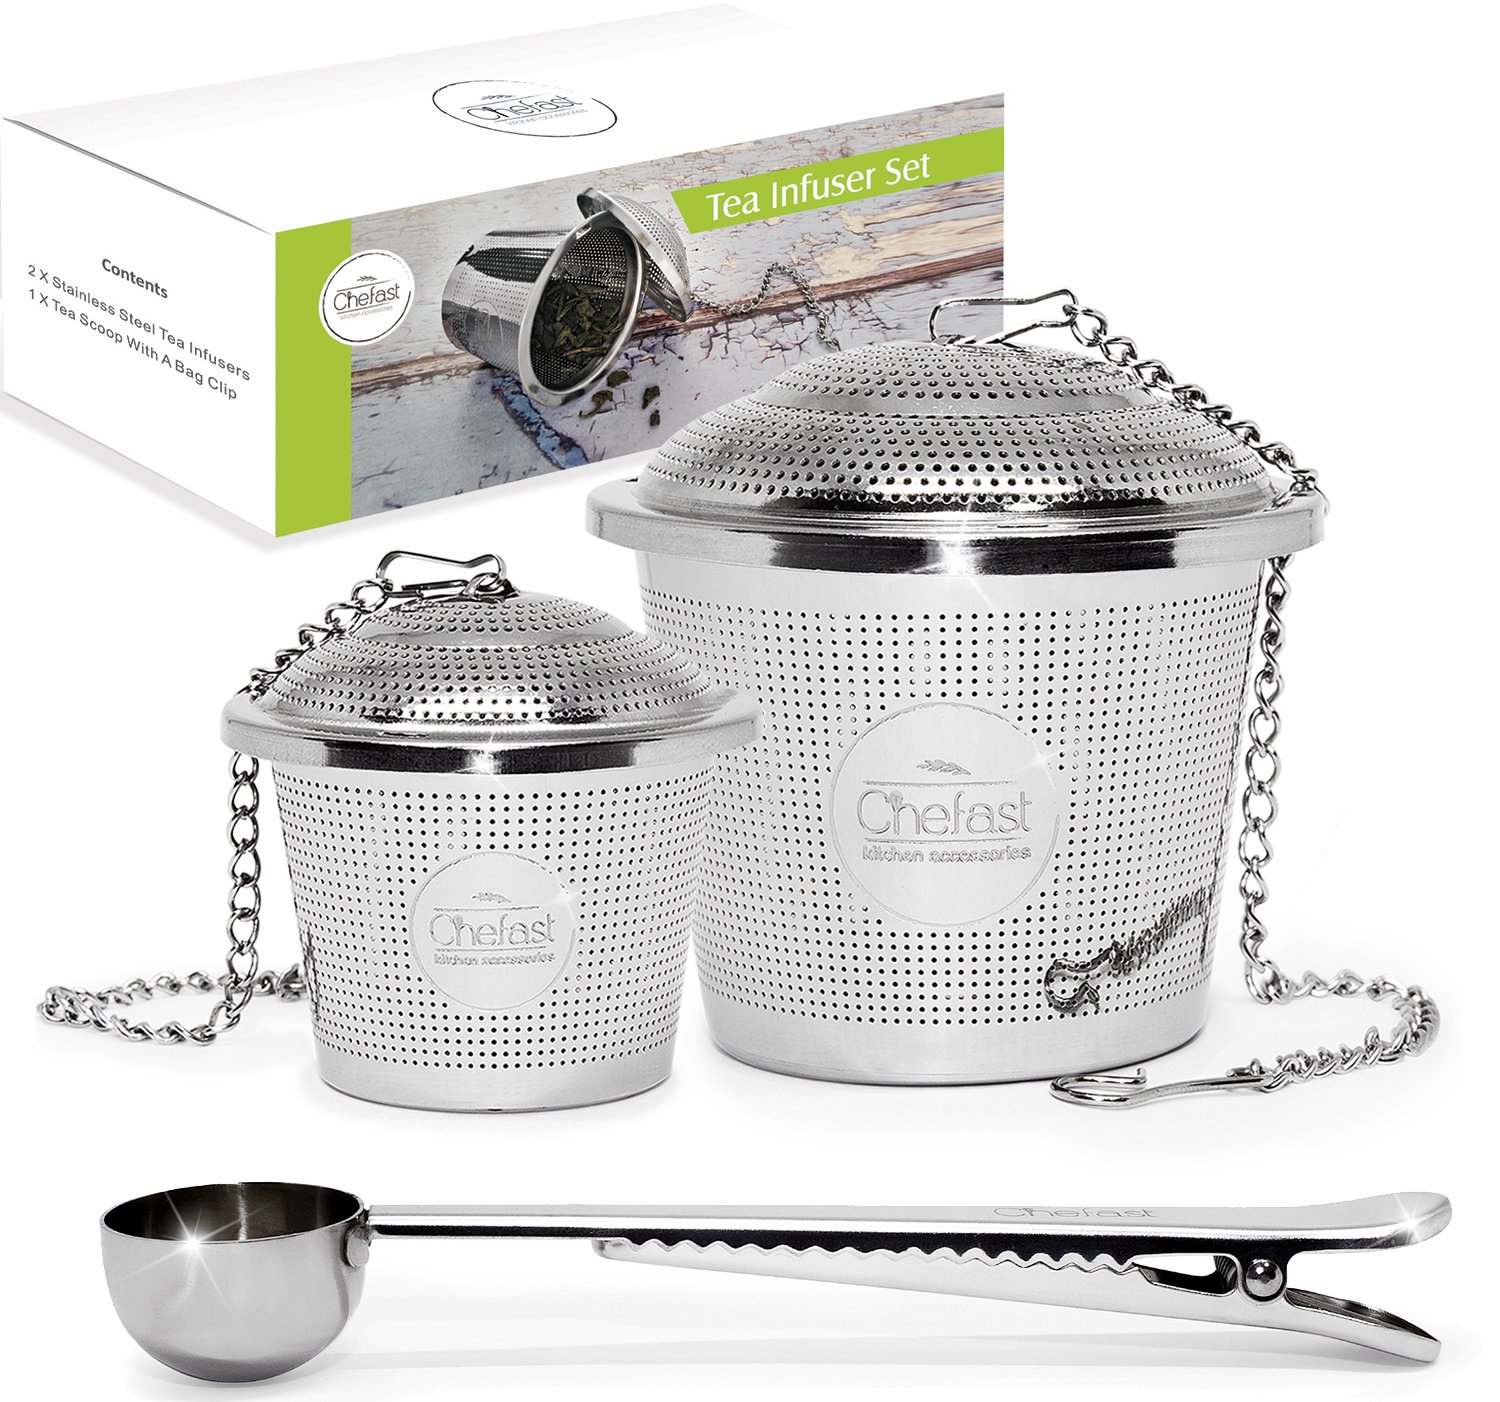 Tea Infuser Set by Chefast (1+1 Pack) - Combo Kit of Single Cup Infuser, Large Infuser, and Metal Scoop with Bag Clip - Reusable Stainless Steel Strainers and Steepers for Loose Leaf Teas